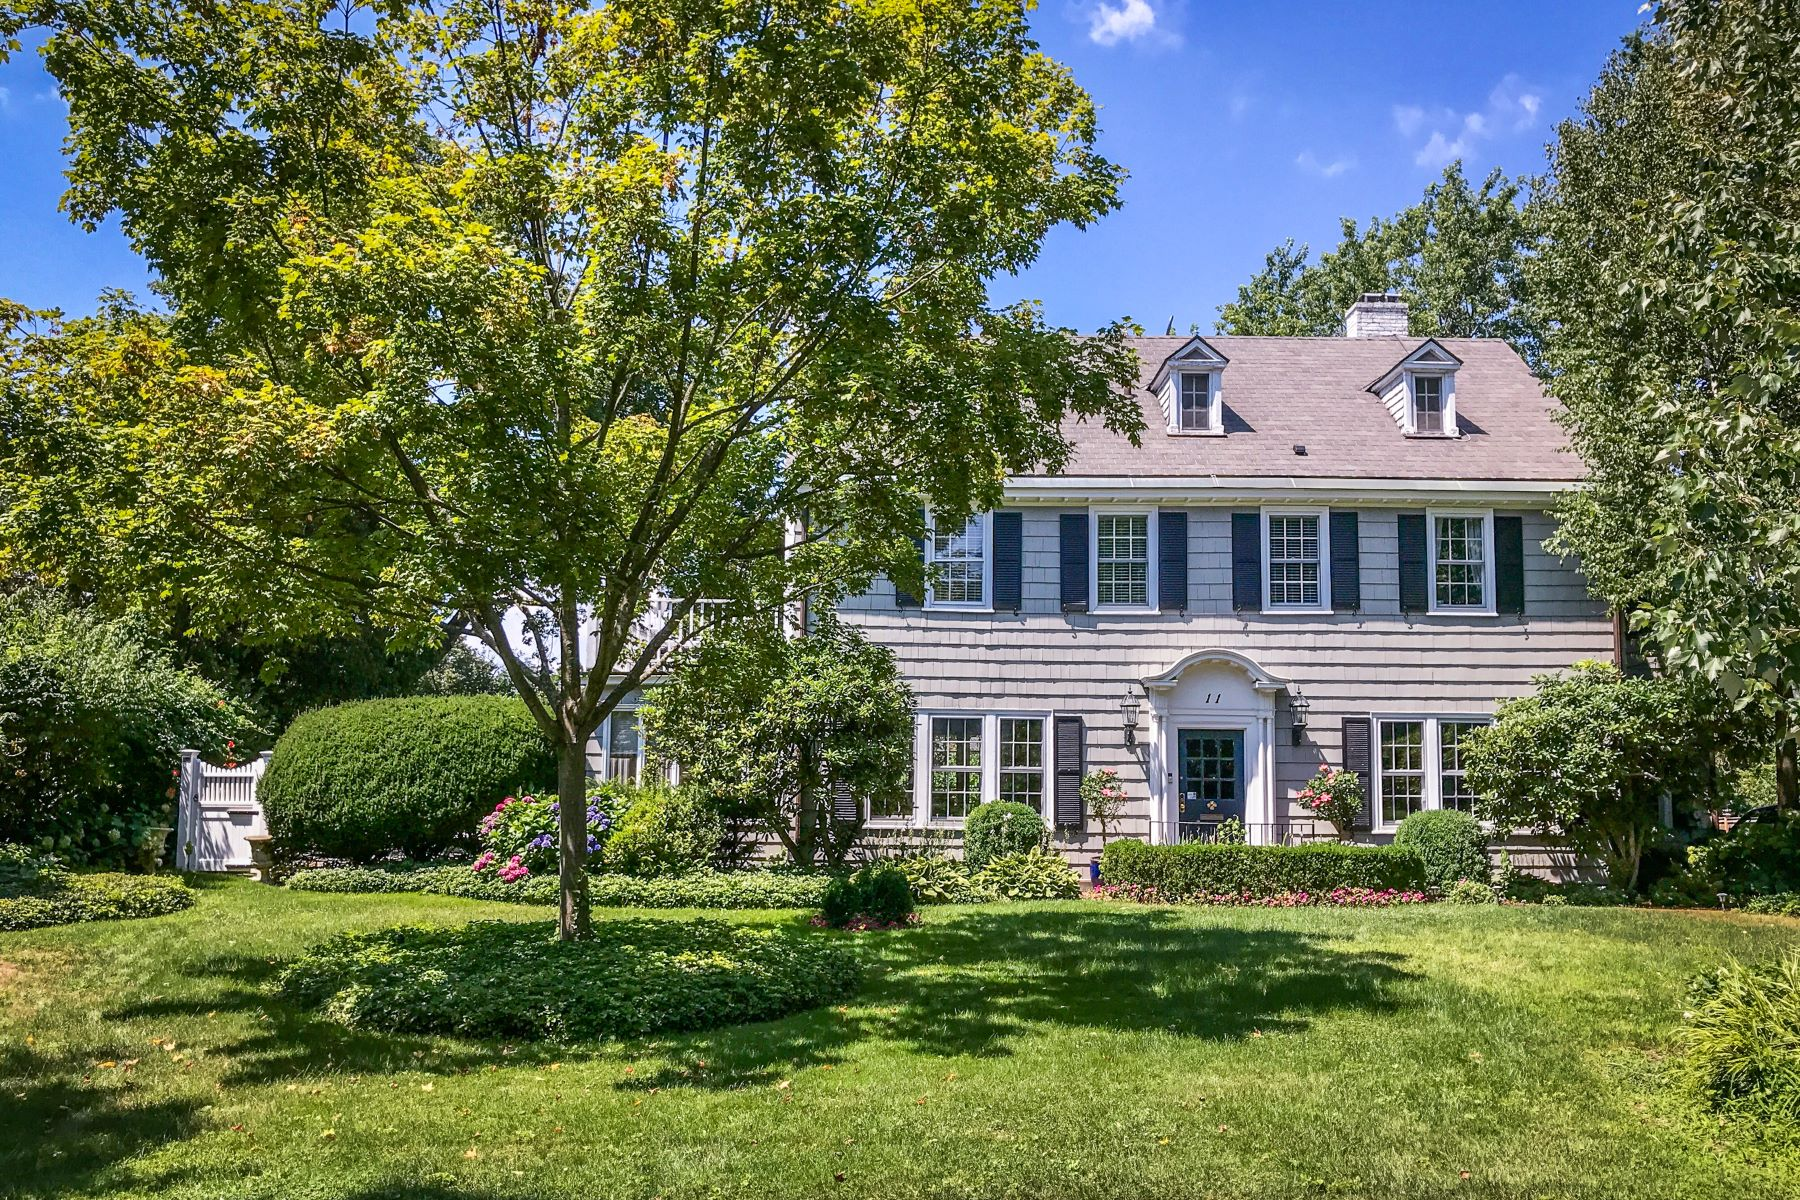 Maison unifamiliale pour l à vendre à Charm and Elegance 11 Governors Road, Bronxville, New York, 10708 États-Unis